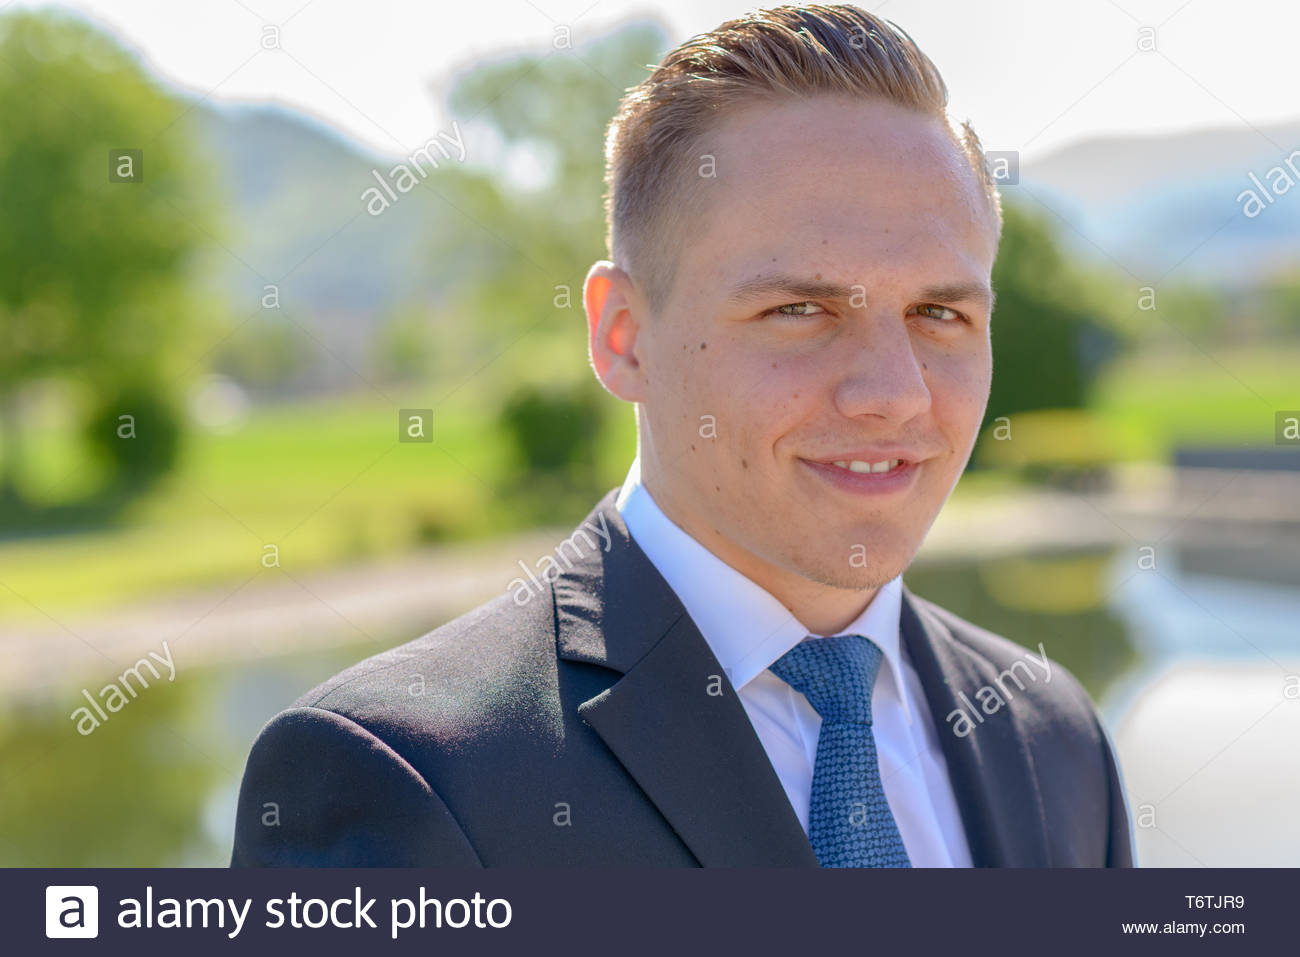 Young professional man with a beaming smile - Stock Image